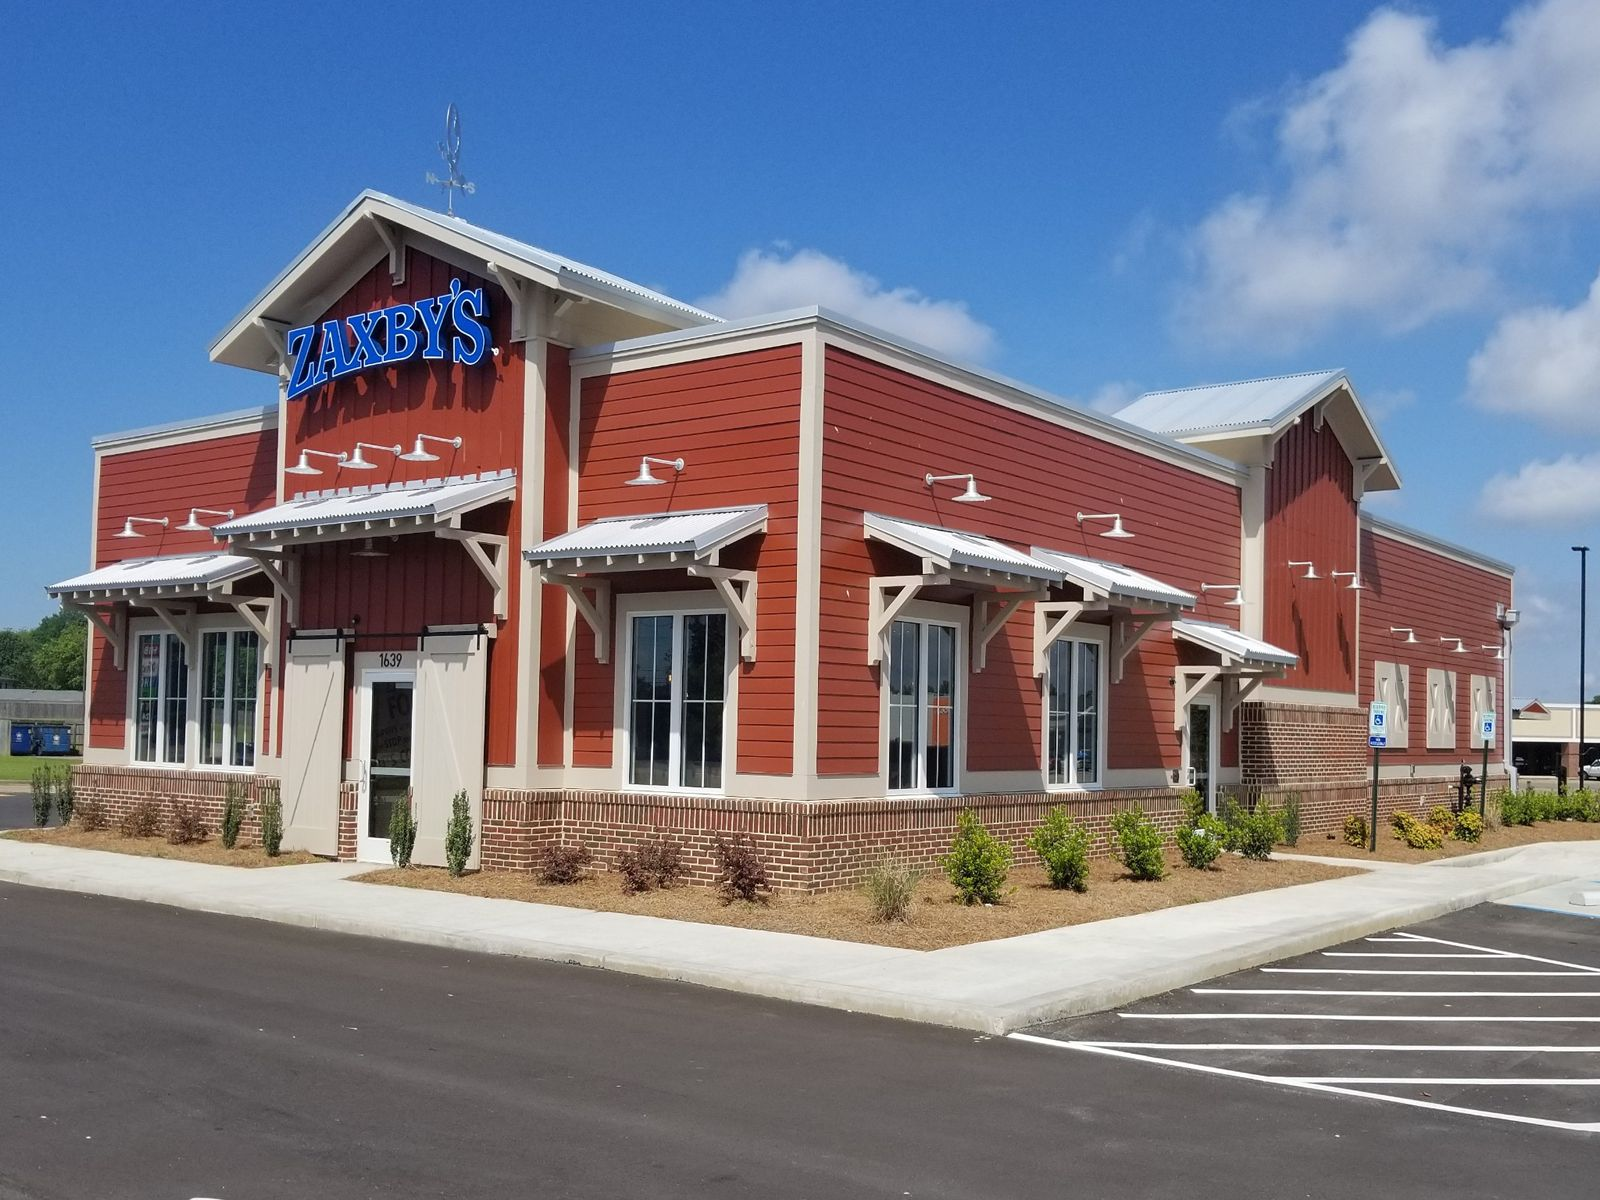 Zaxby's Hatches First Covington, TN Restaurant